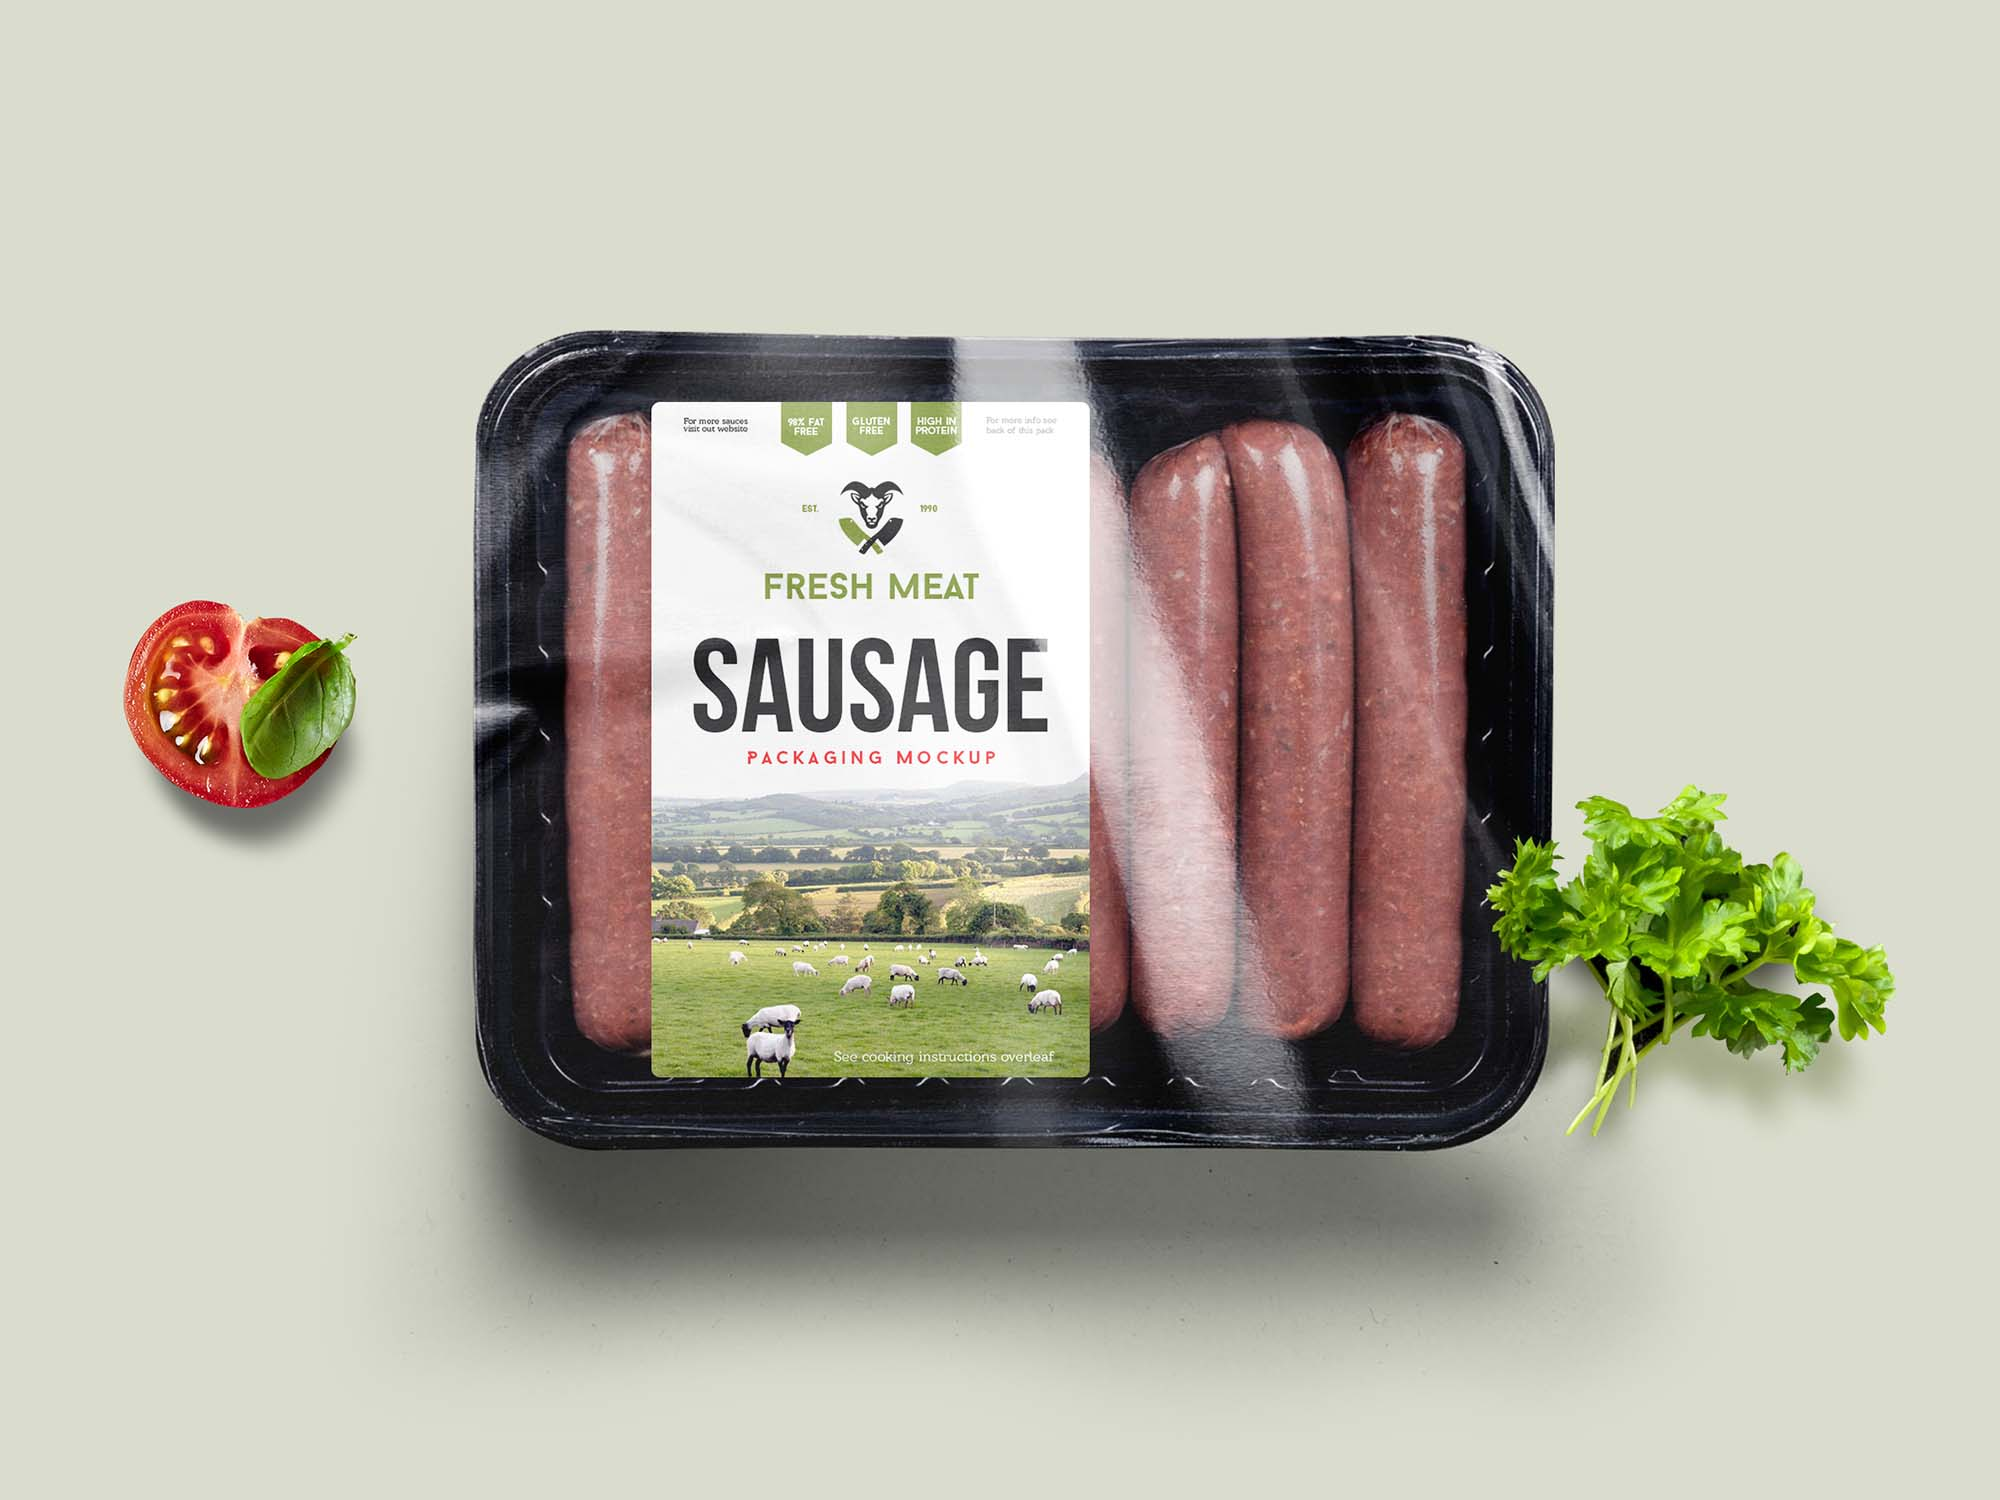 Sausage Food Packaging Mockup